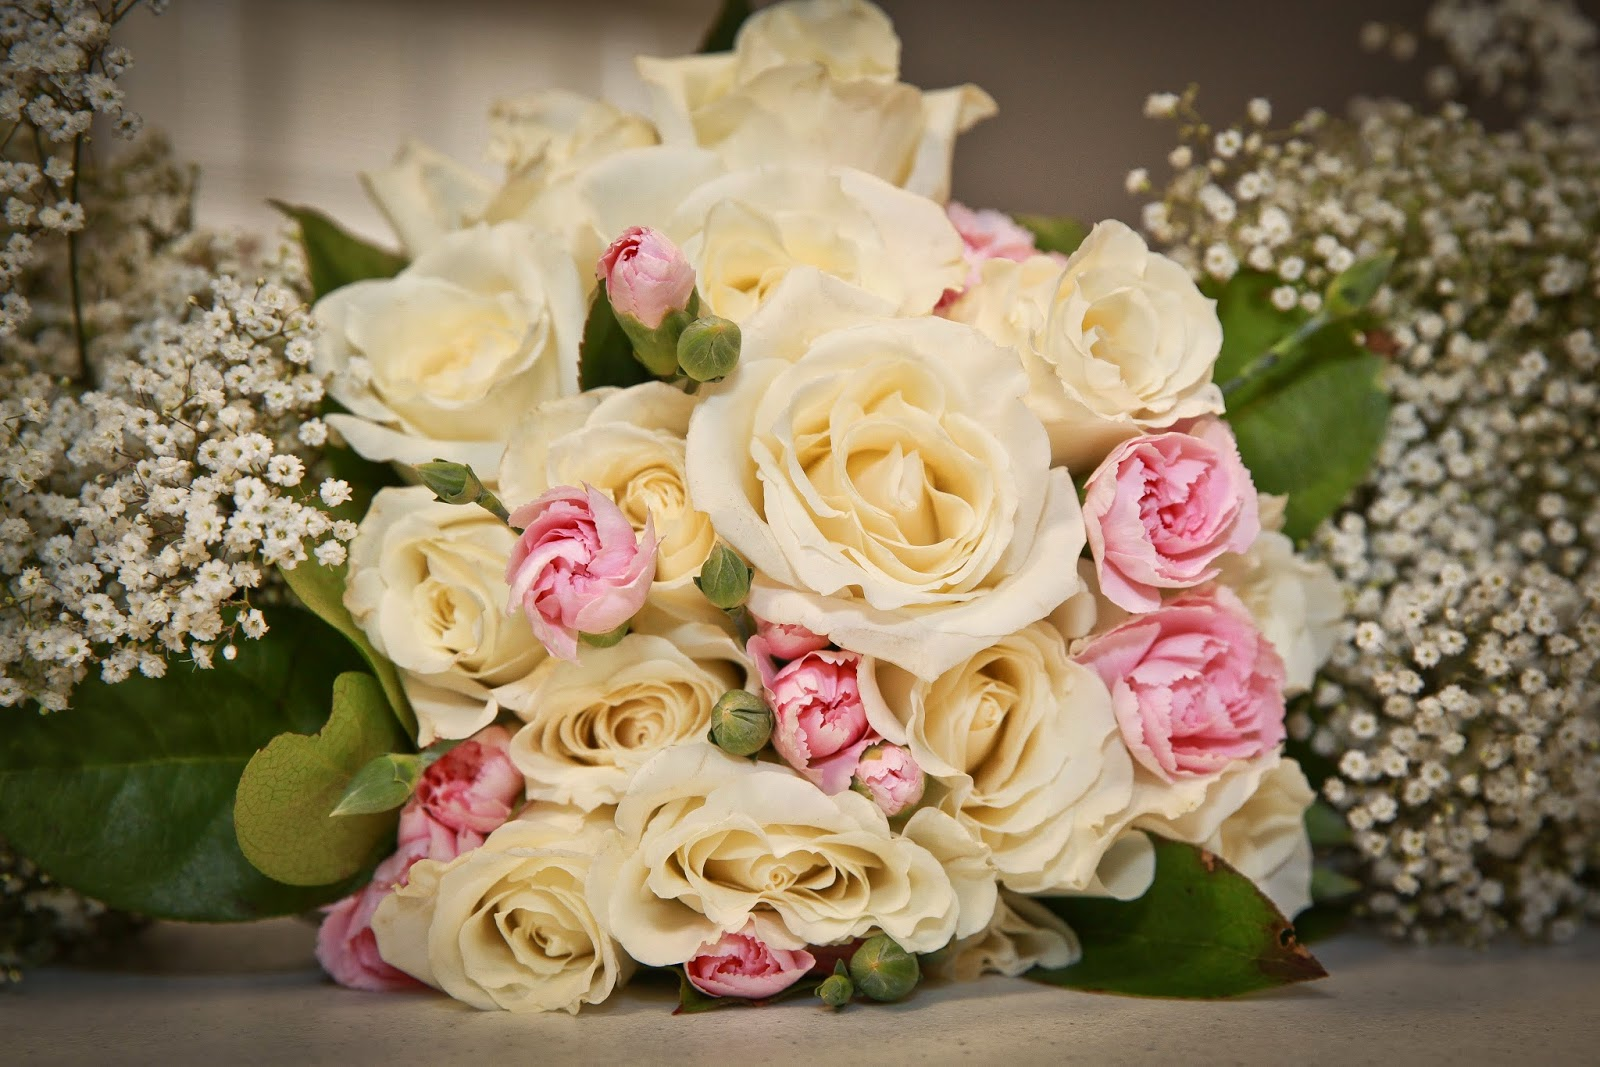 DIY Why Spend More Flowers from Sams Club for wedding